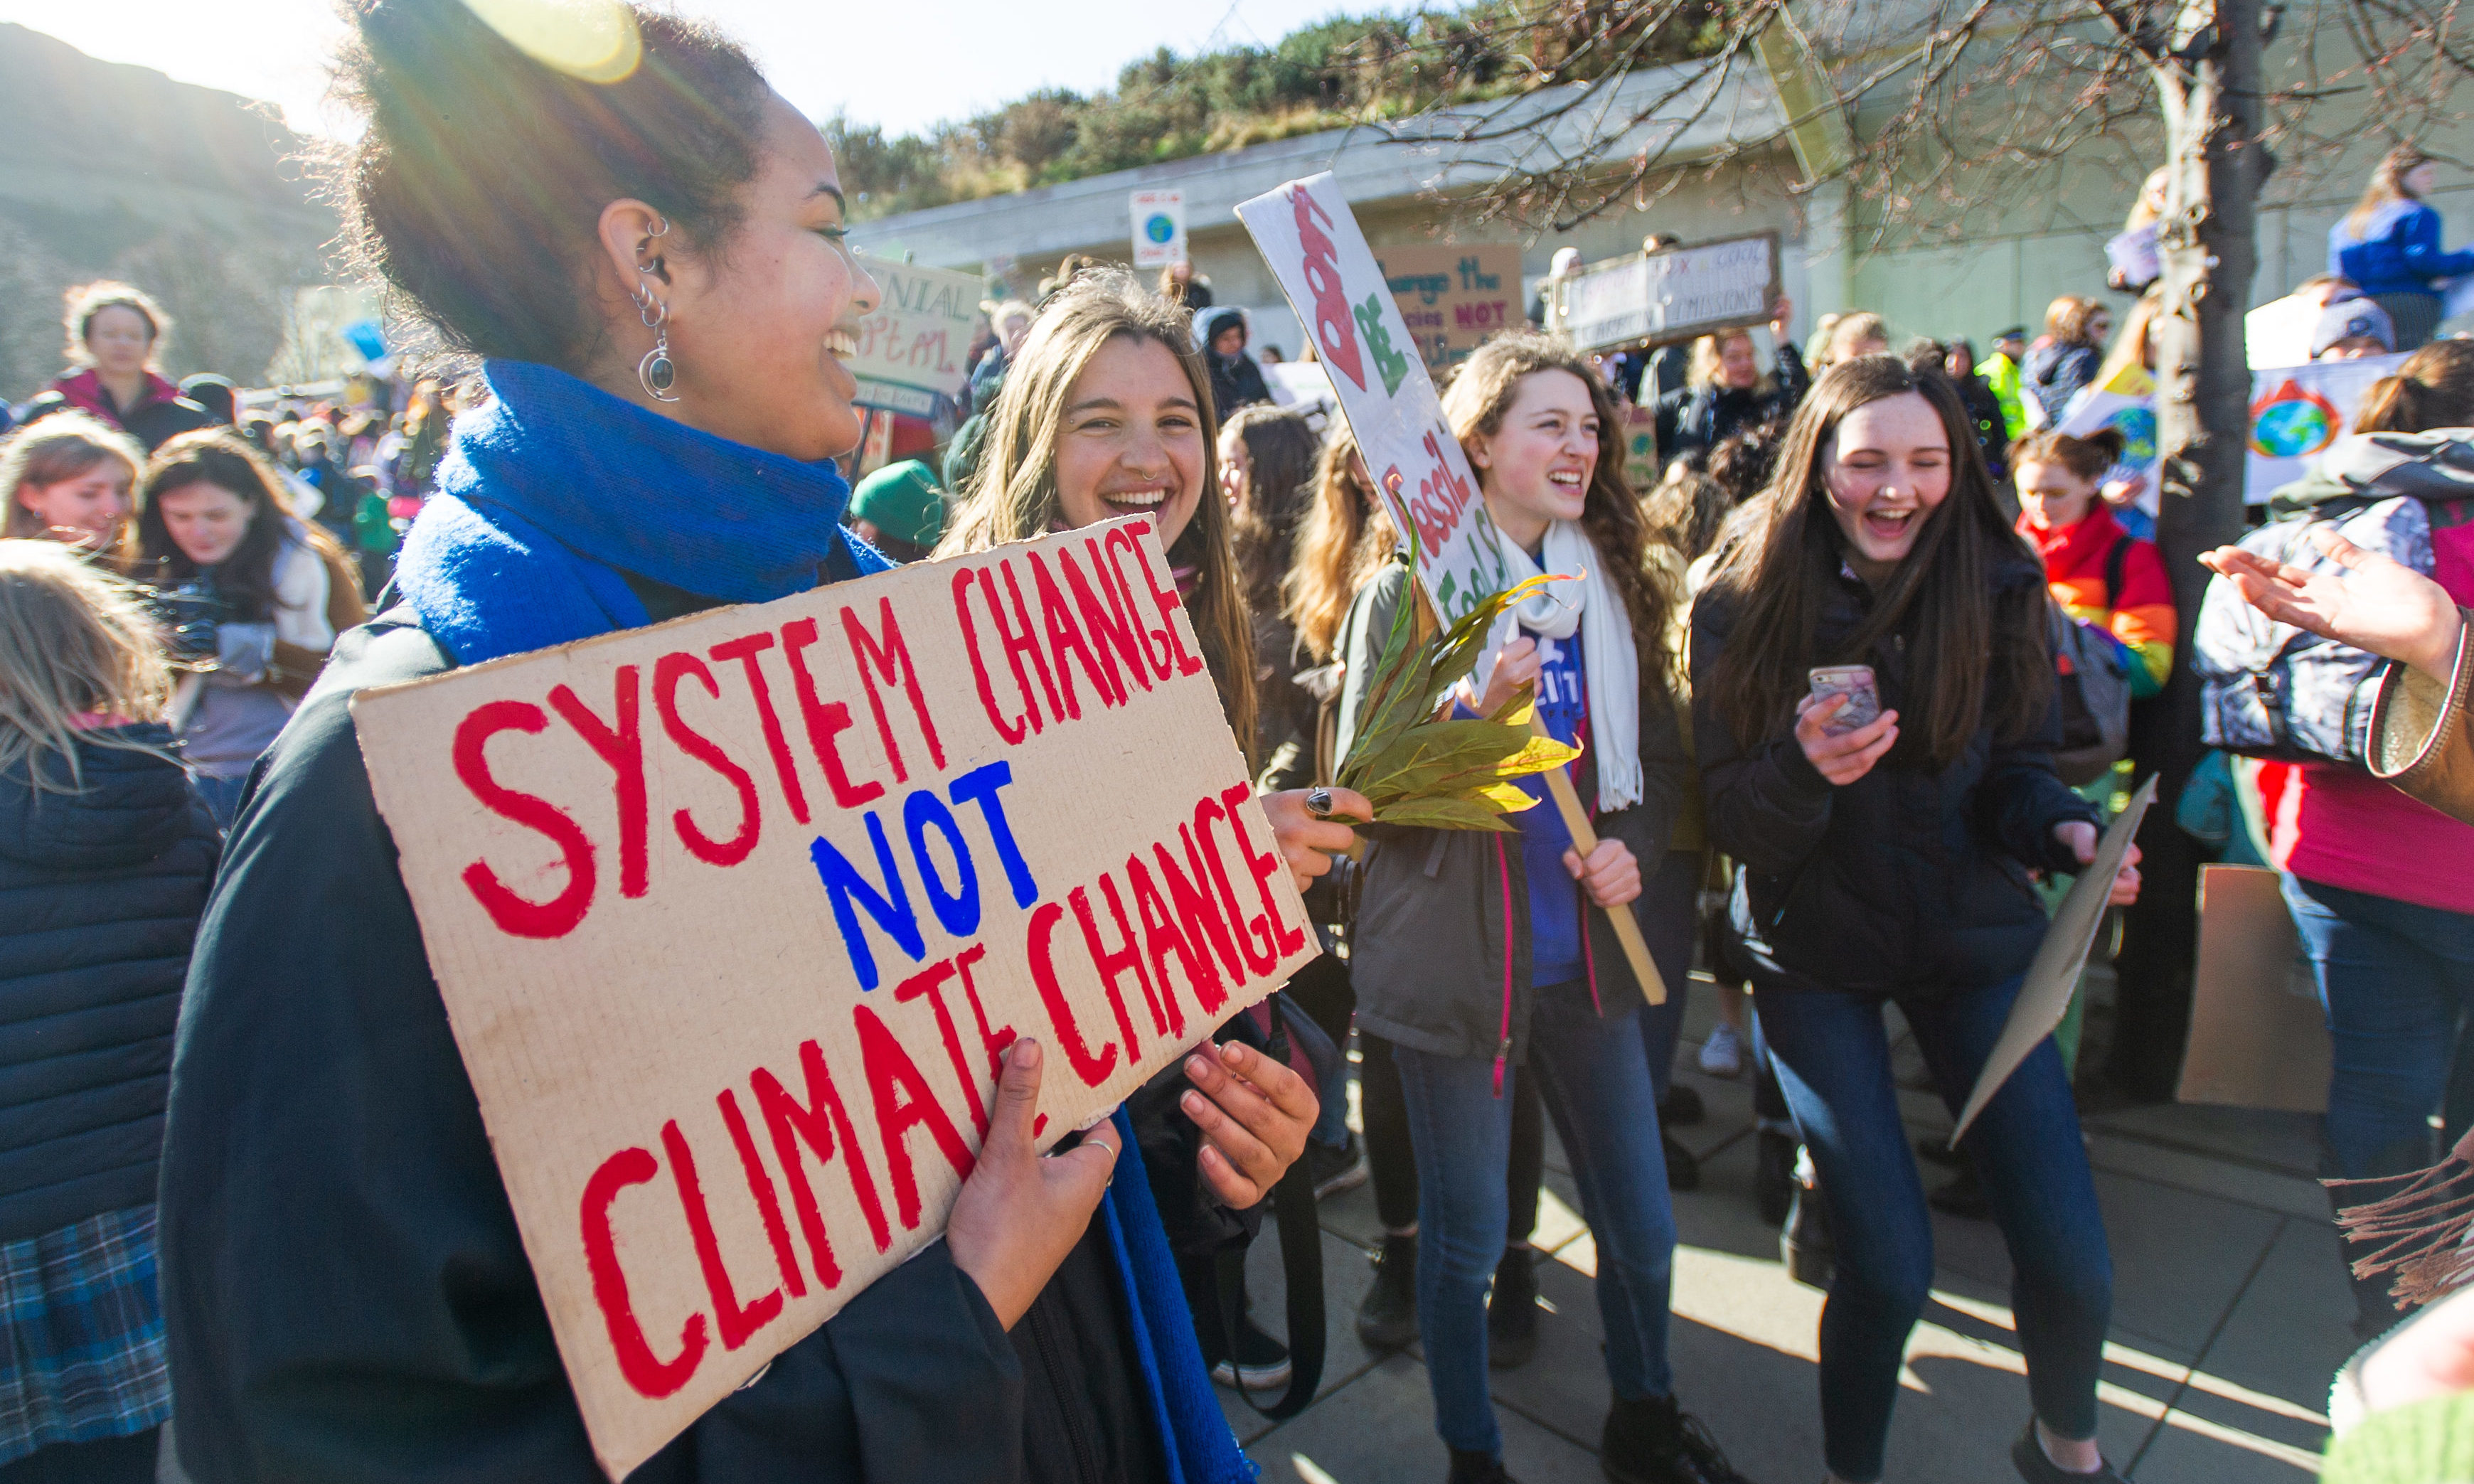 Young people have been protesting against climate change